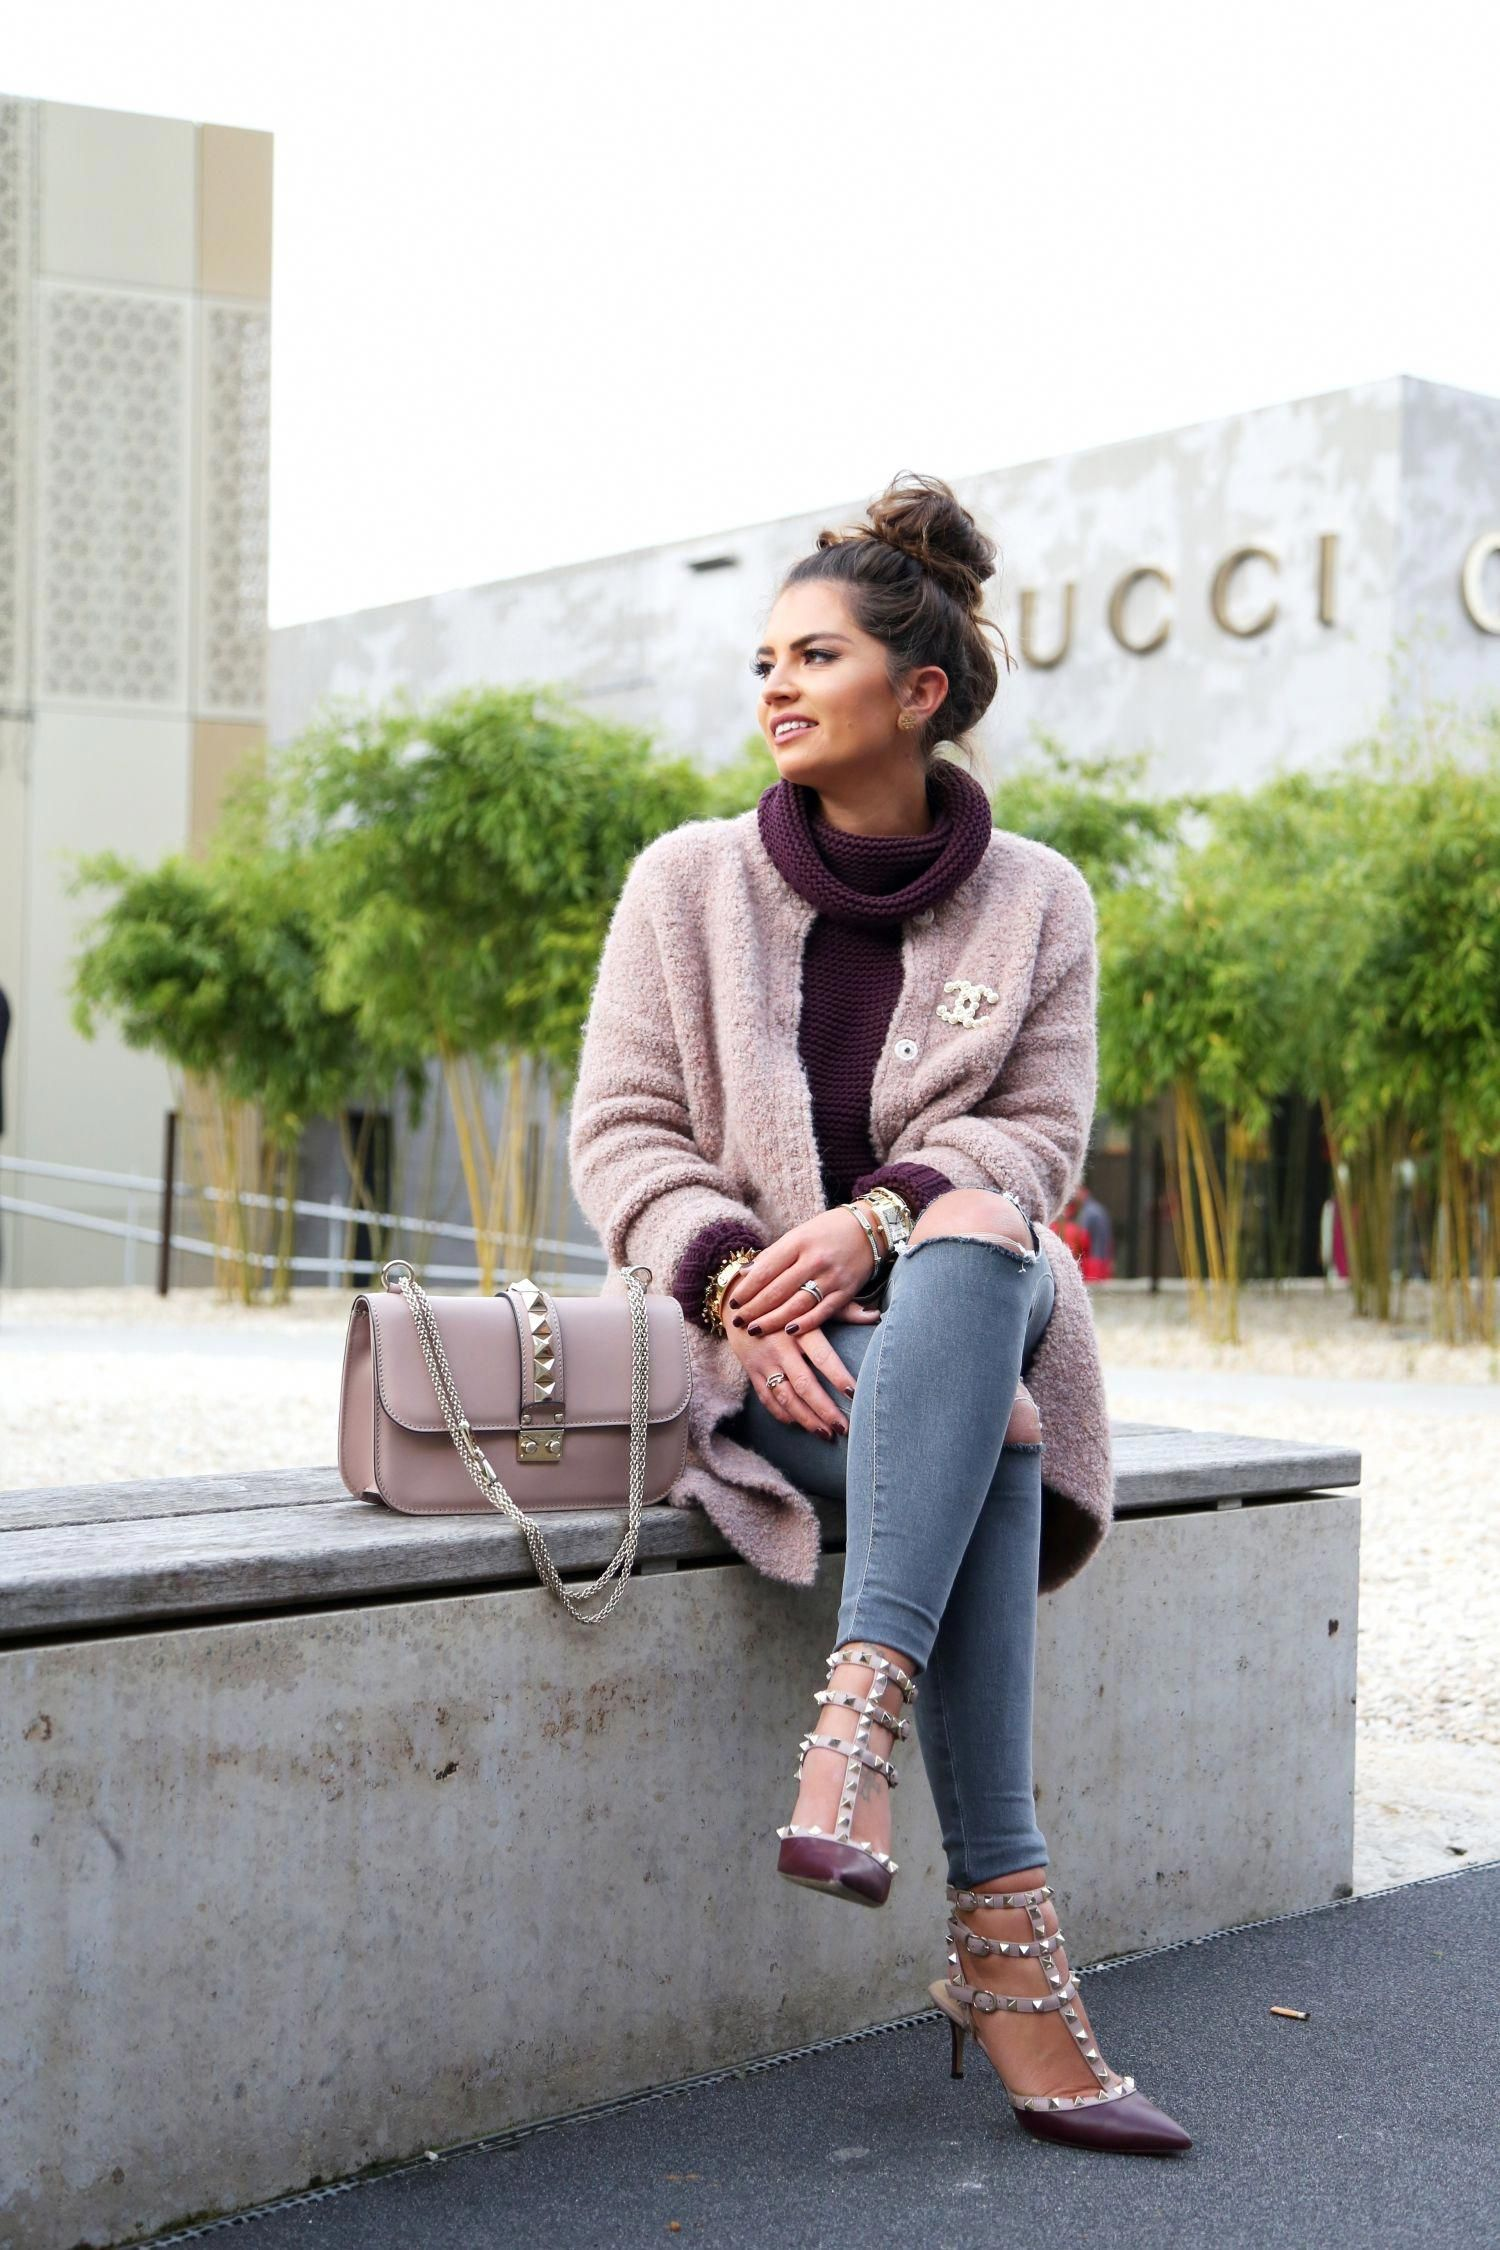 fe36c3d198a7 outfit-atumn-fall-topshop-ripped-jeans-glam-lock-bag-nude-valentino ...